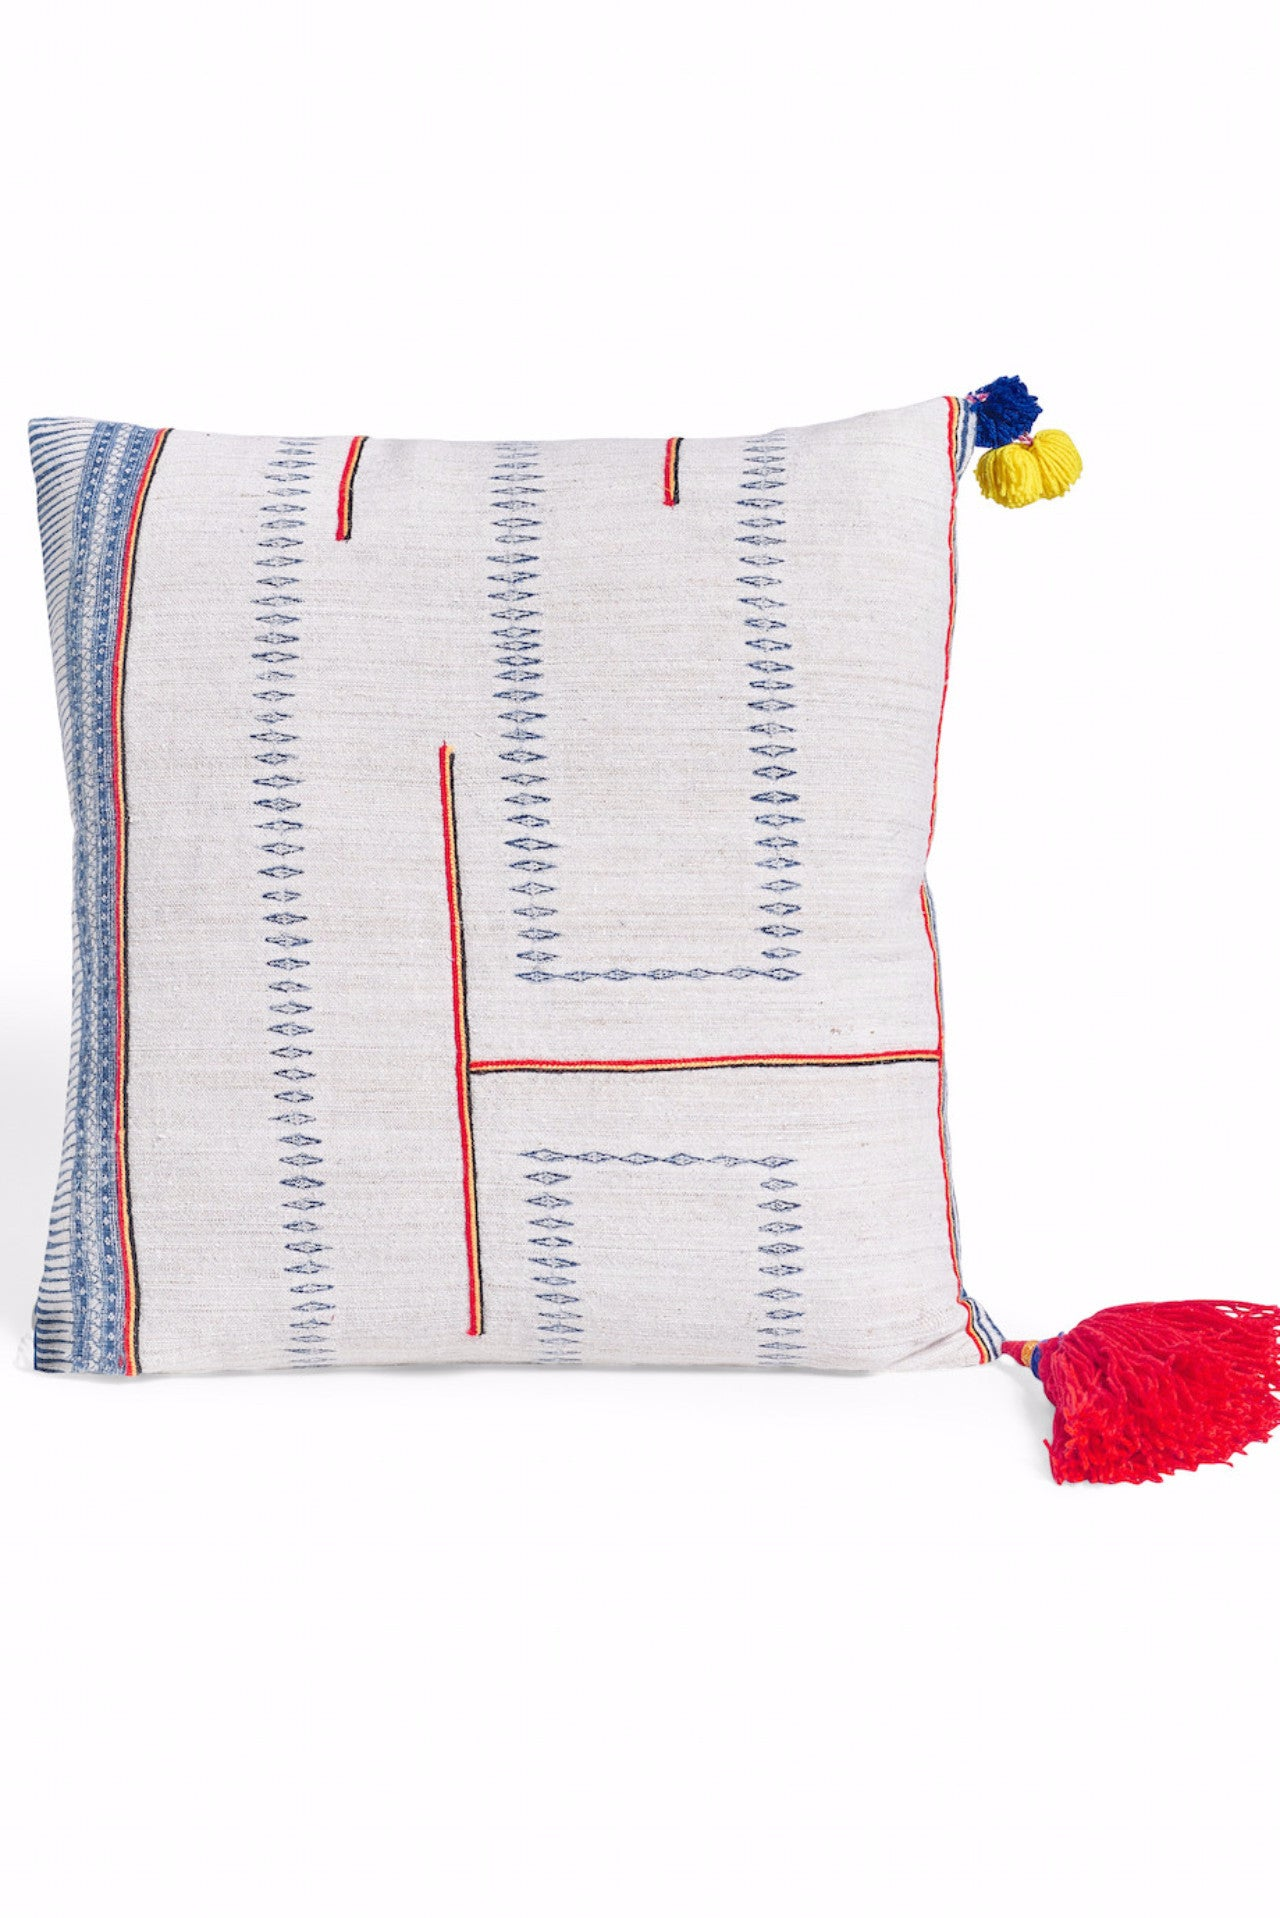 "Vintage Textile 18"" square Pillow with Tassels"